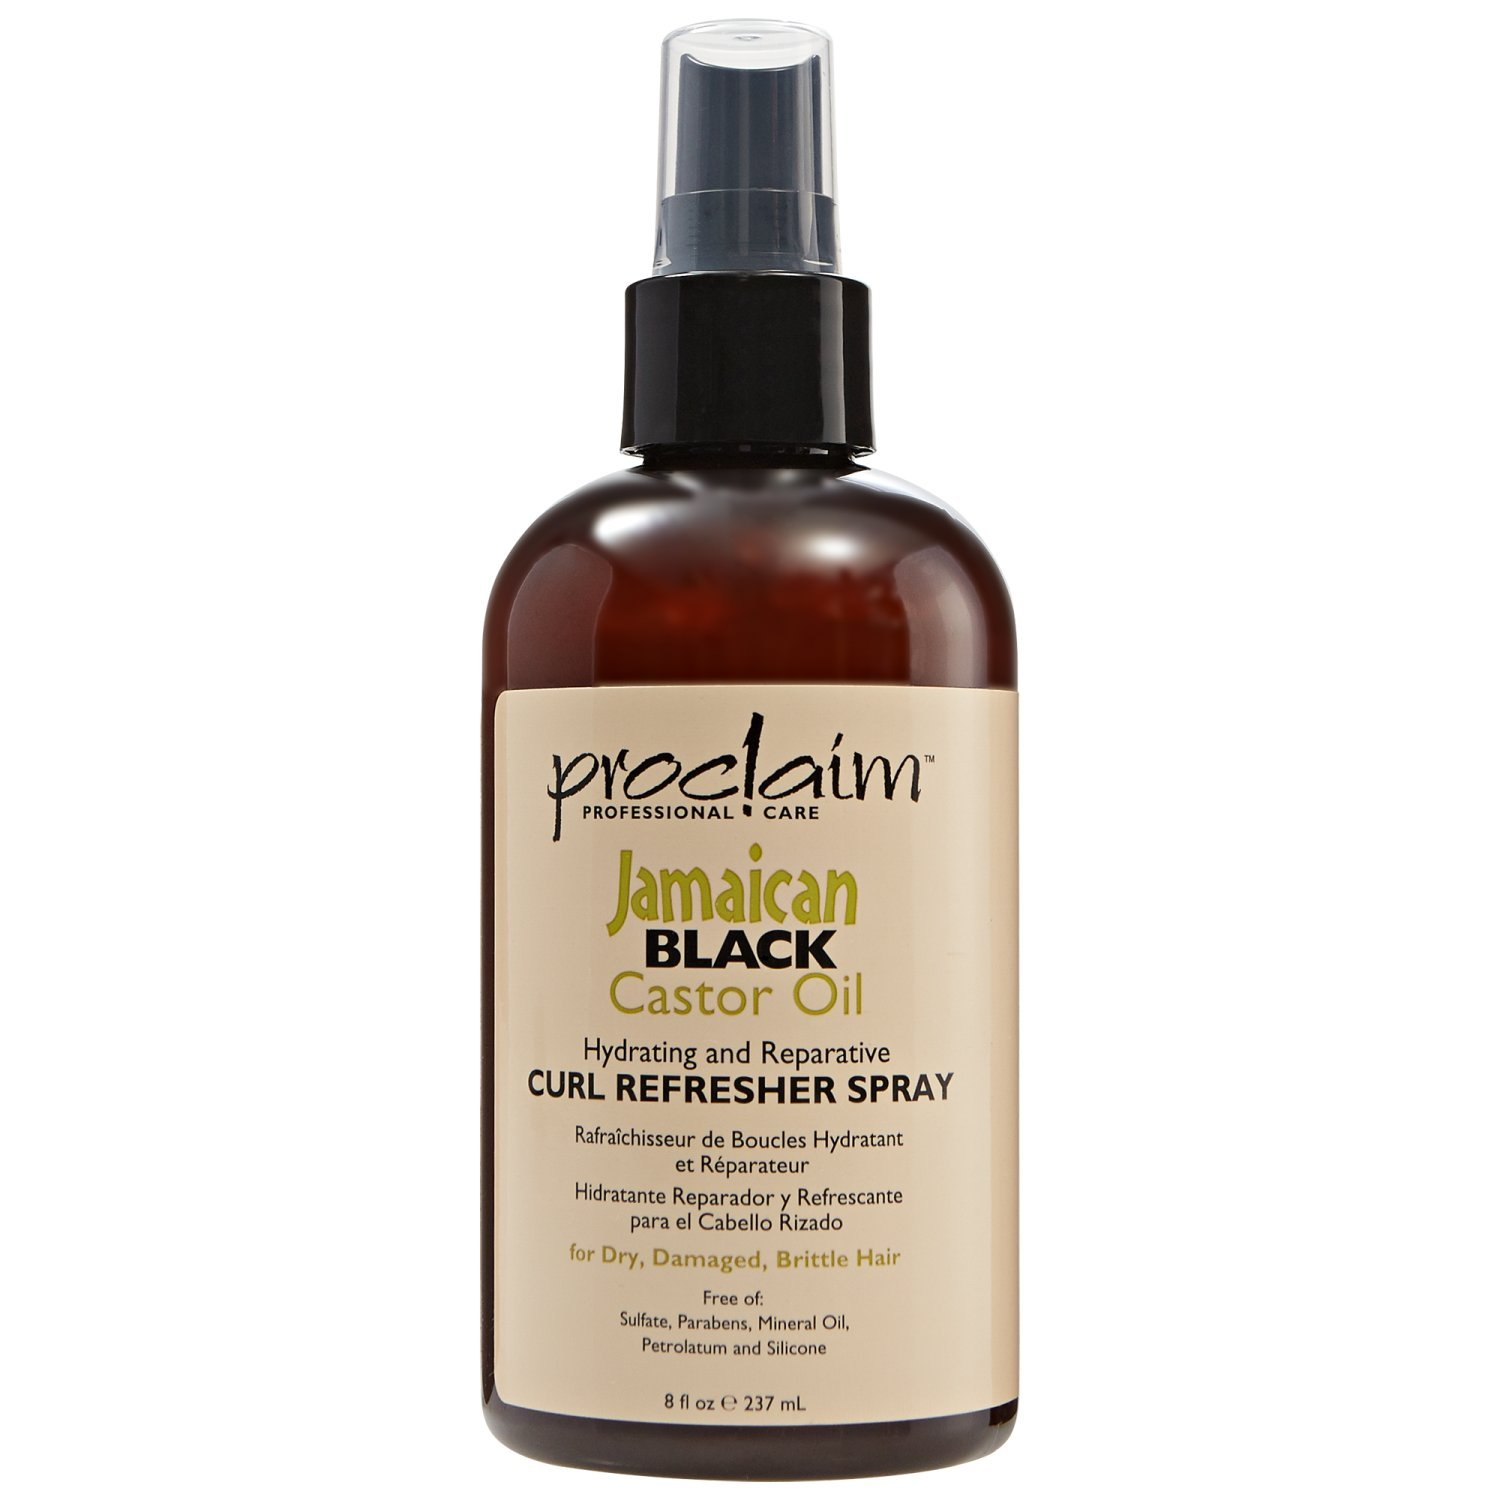 Amazon.com : Proclaim Jamaican Black Castor Oil Curl Refresher Spray : Beauty